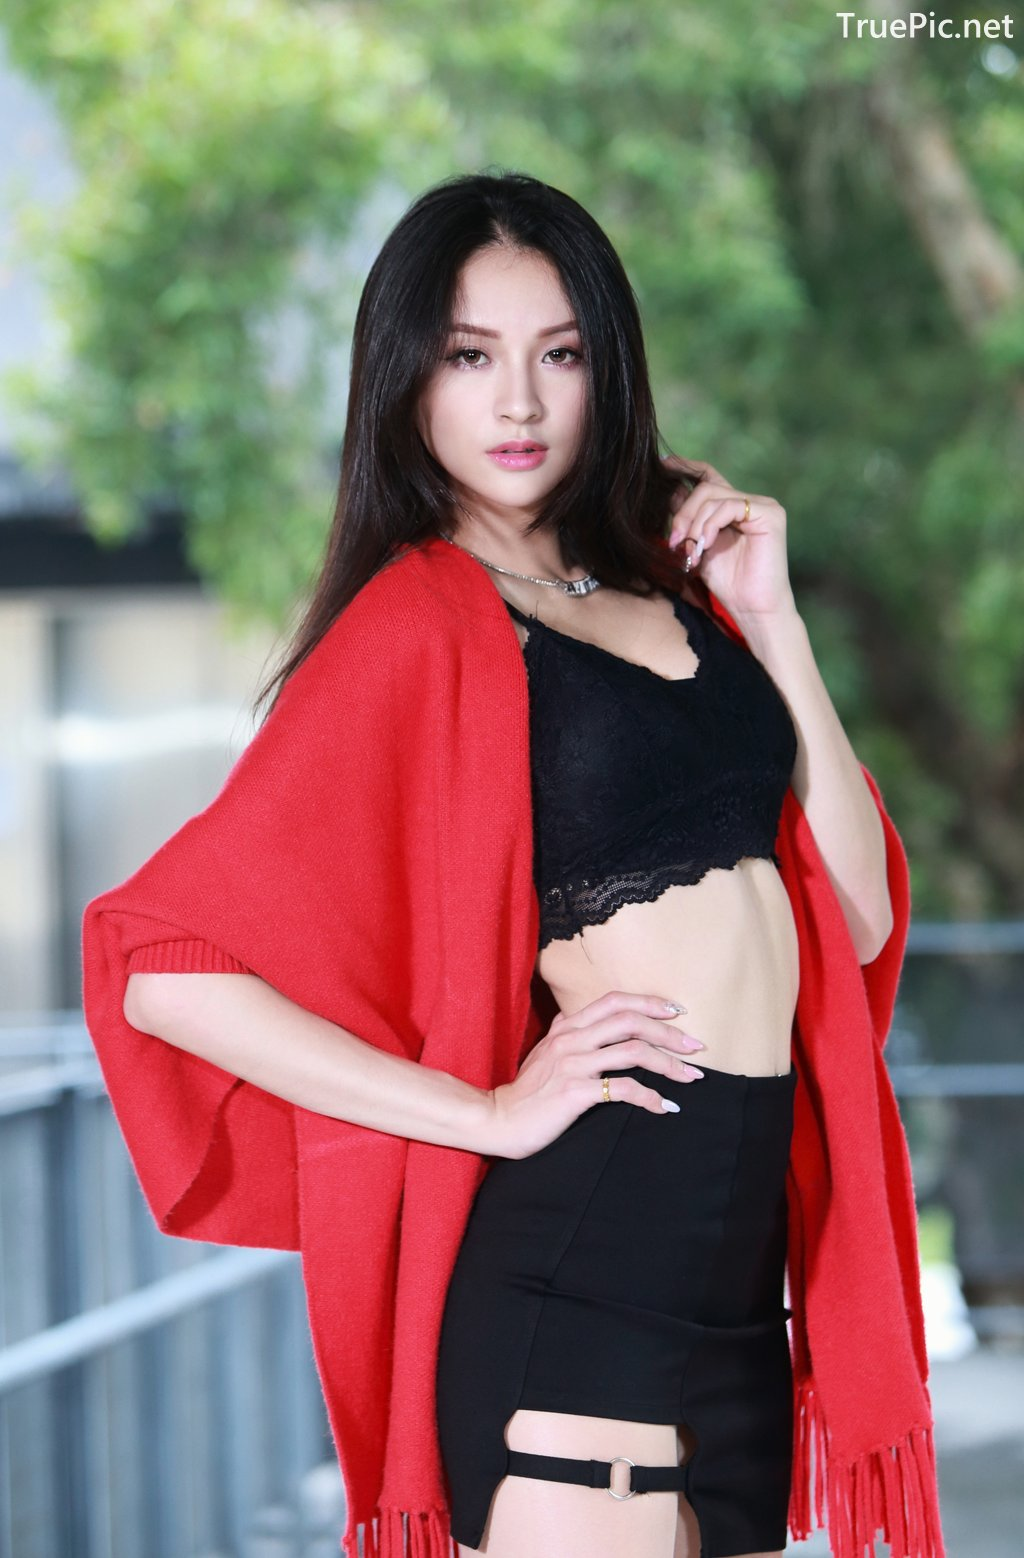 Image-Taiwanese-Beautiful-Long-Legs-Girl-雪岑Lola-Black-Sexy-Short-Pants-and-Crop-Top-Outfit-TruePic.net- Picture-9